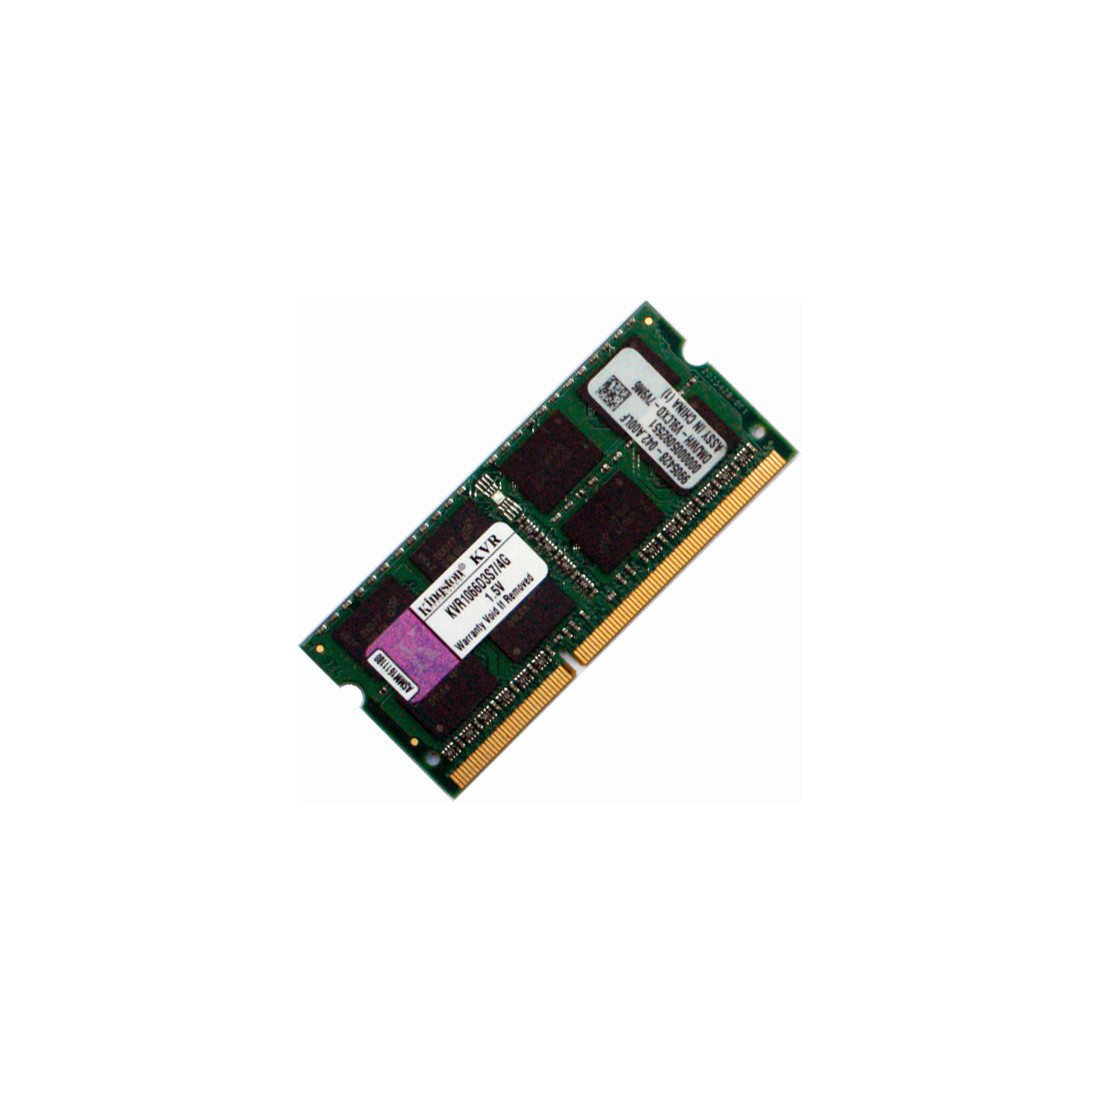 Kingston 4GB DDR3 Laptop Memory